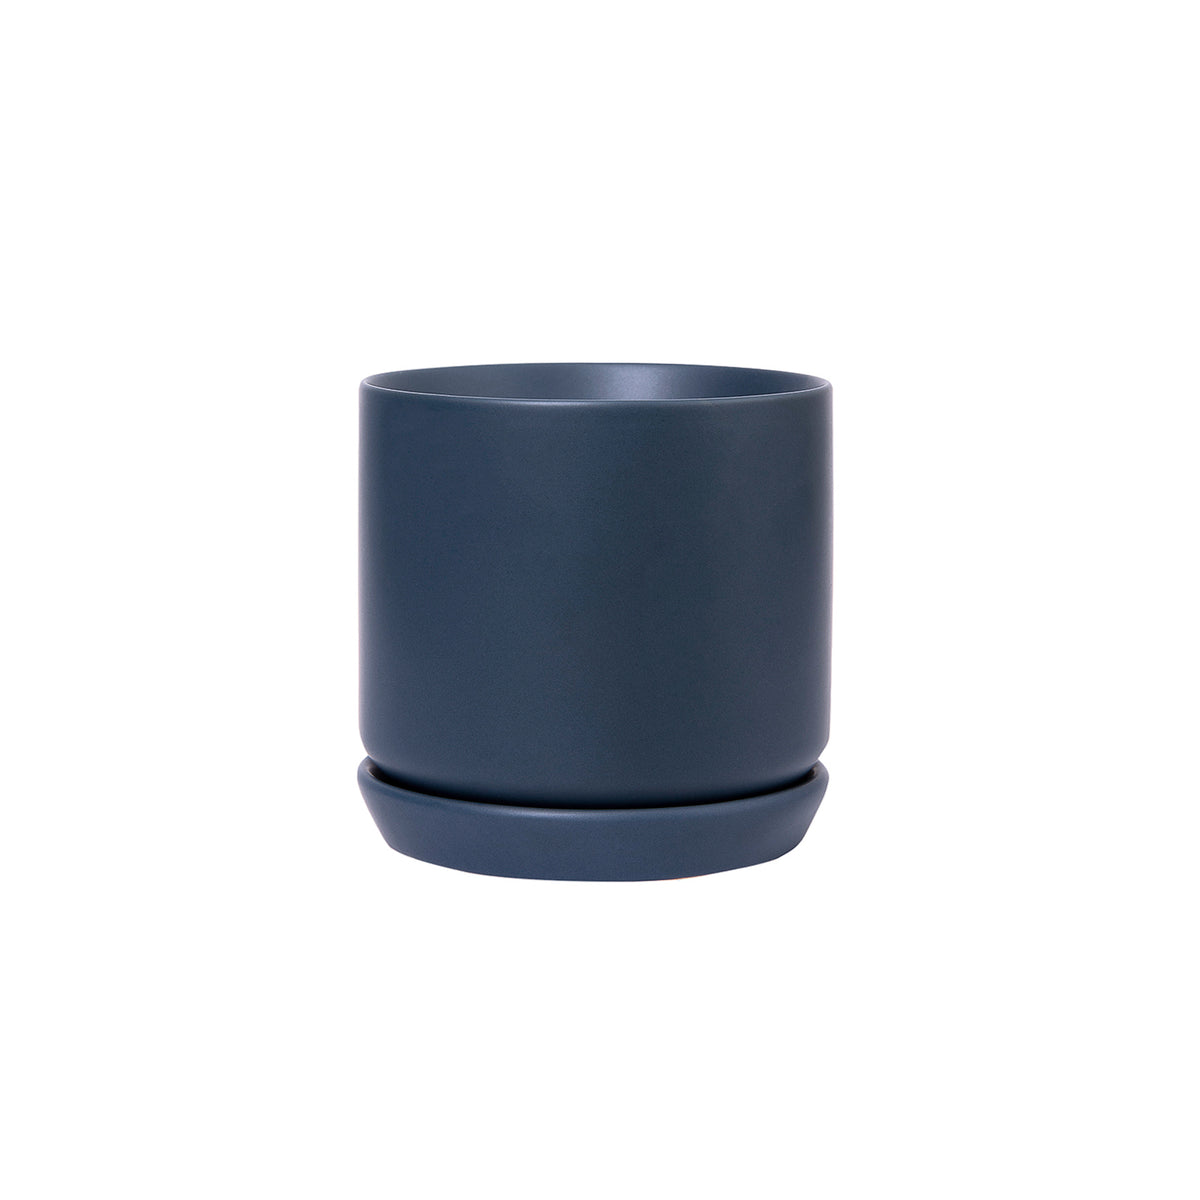 Oslo Planter - Muted Navy